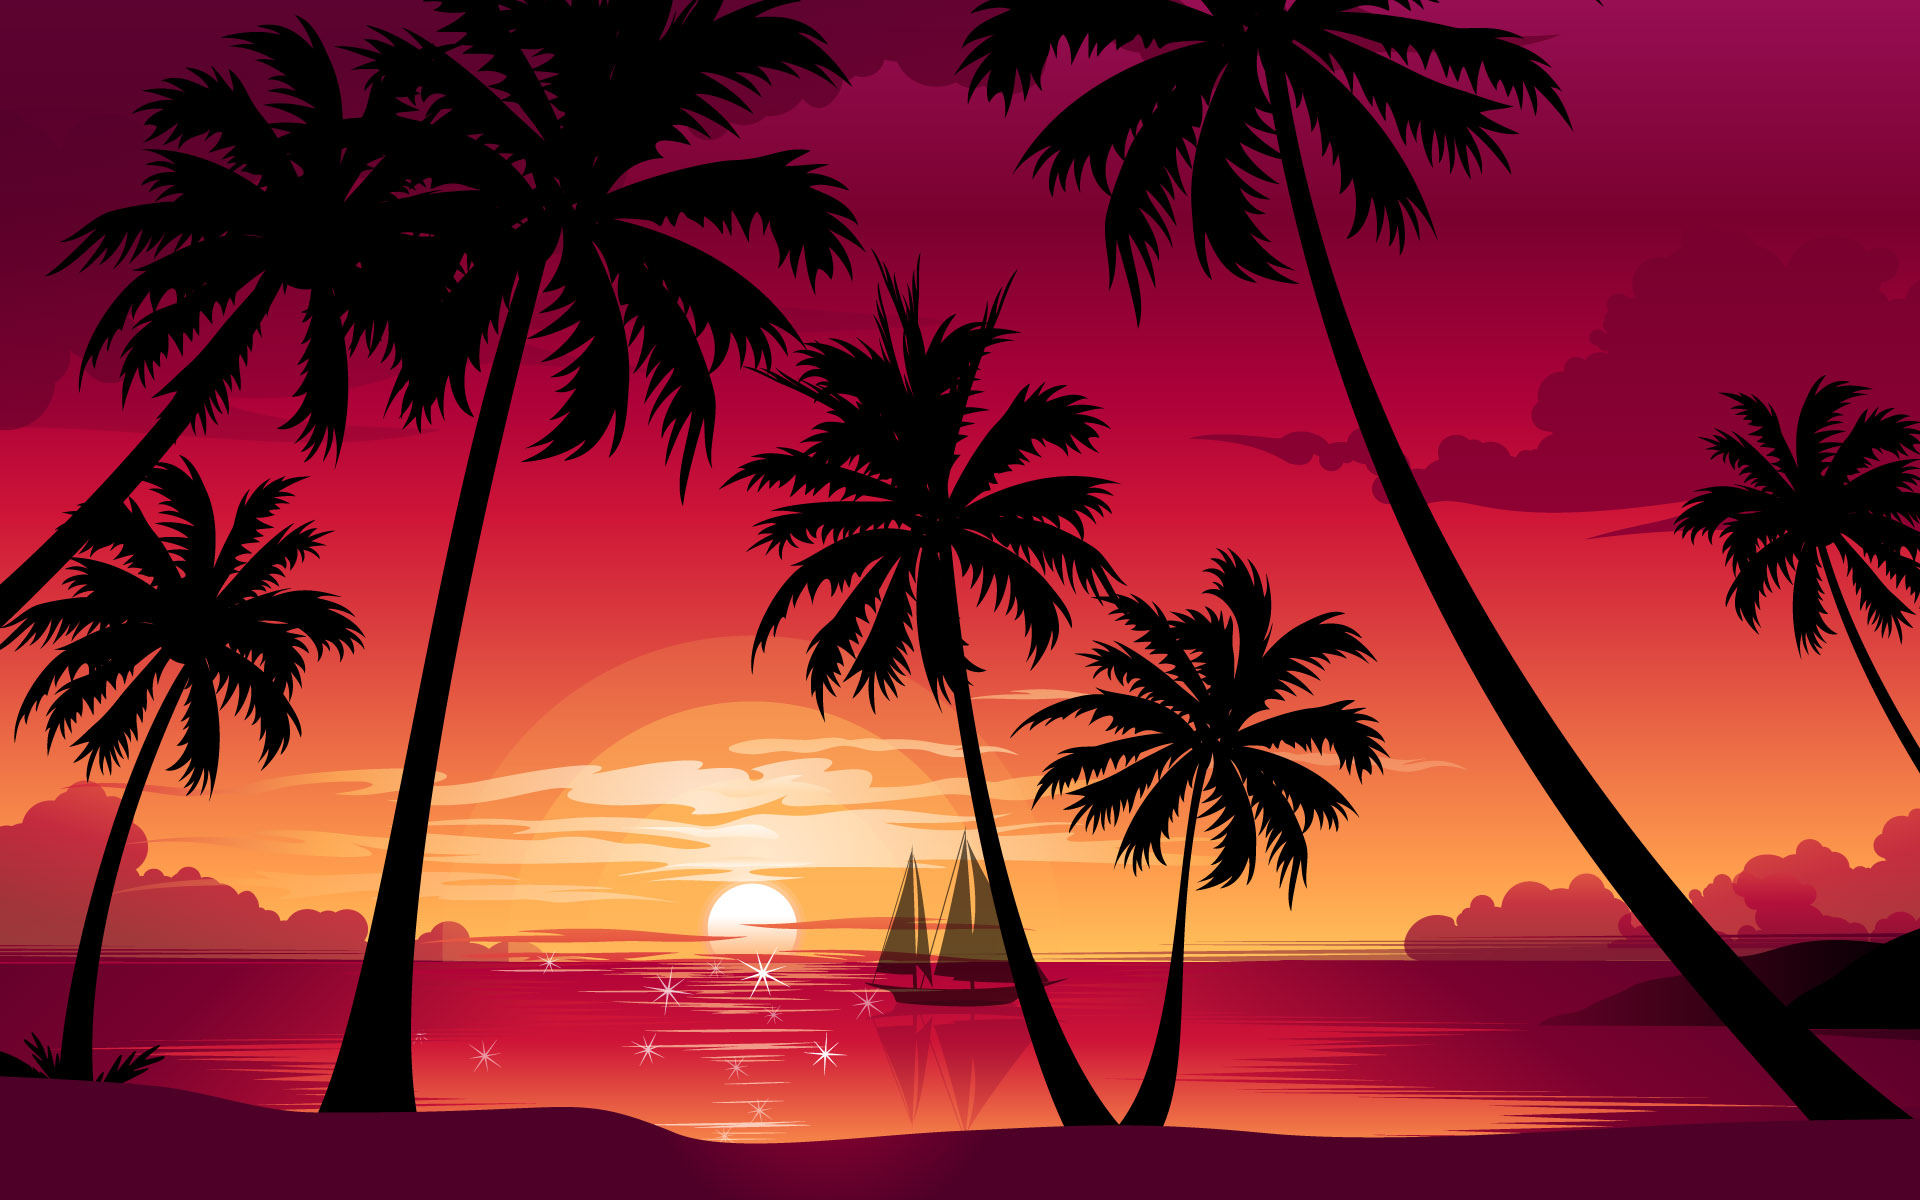 trees sunset hd wallpapers palm trees sunset wallpapers palm trees